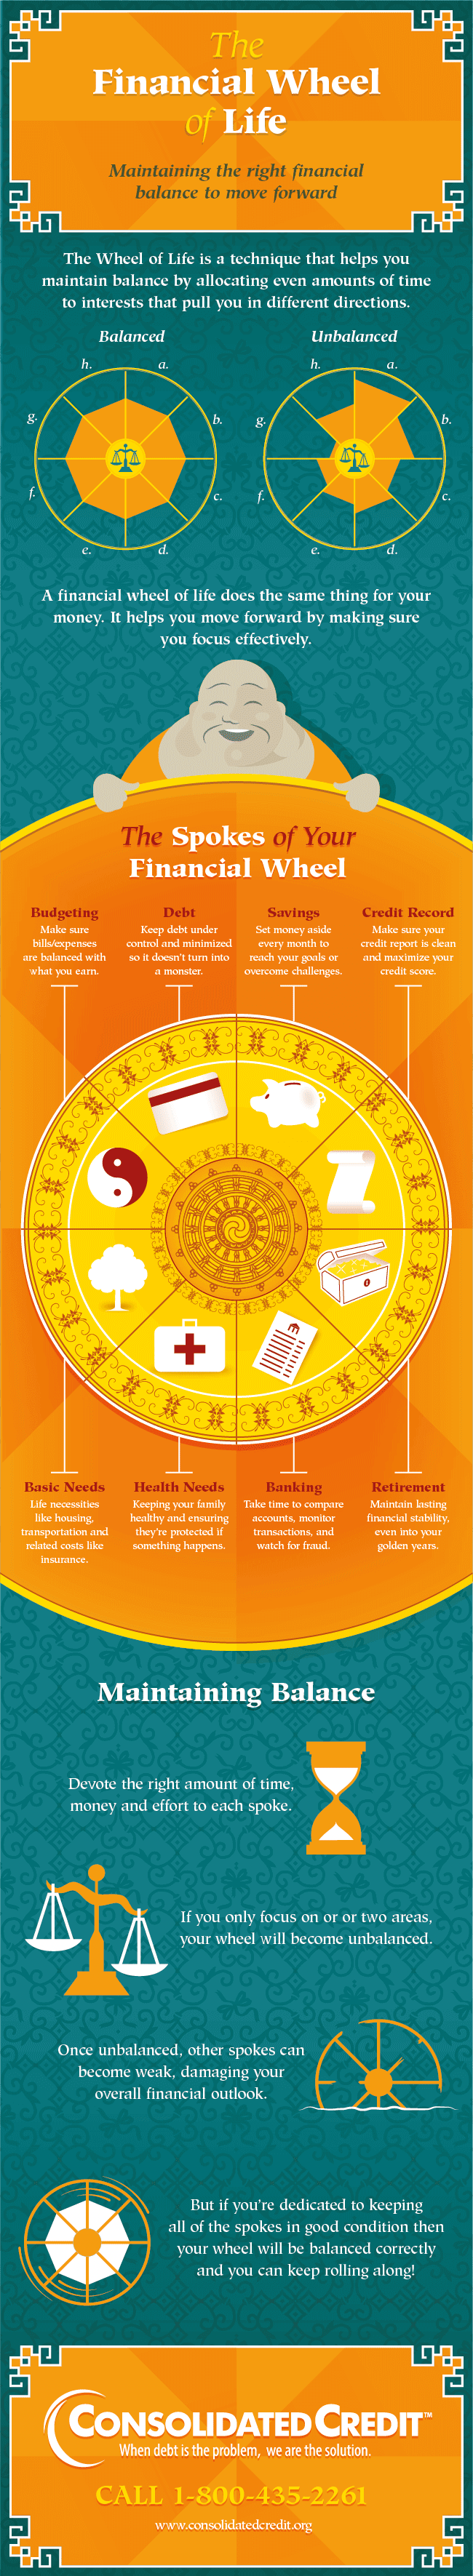 Find balance with the Financial Wheel of Life infographic